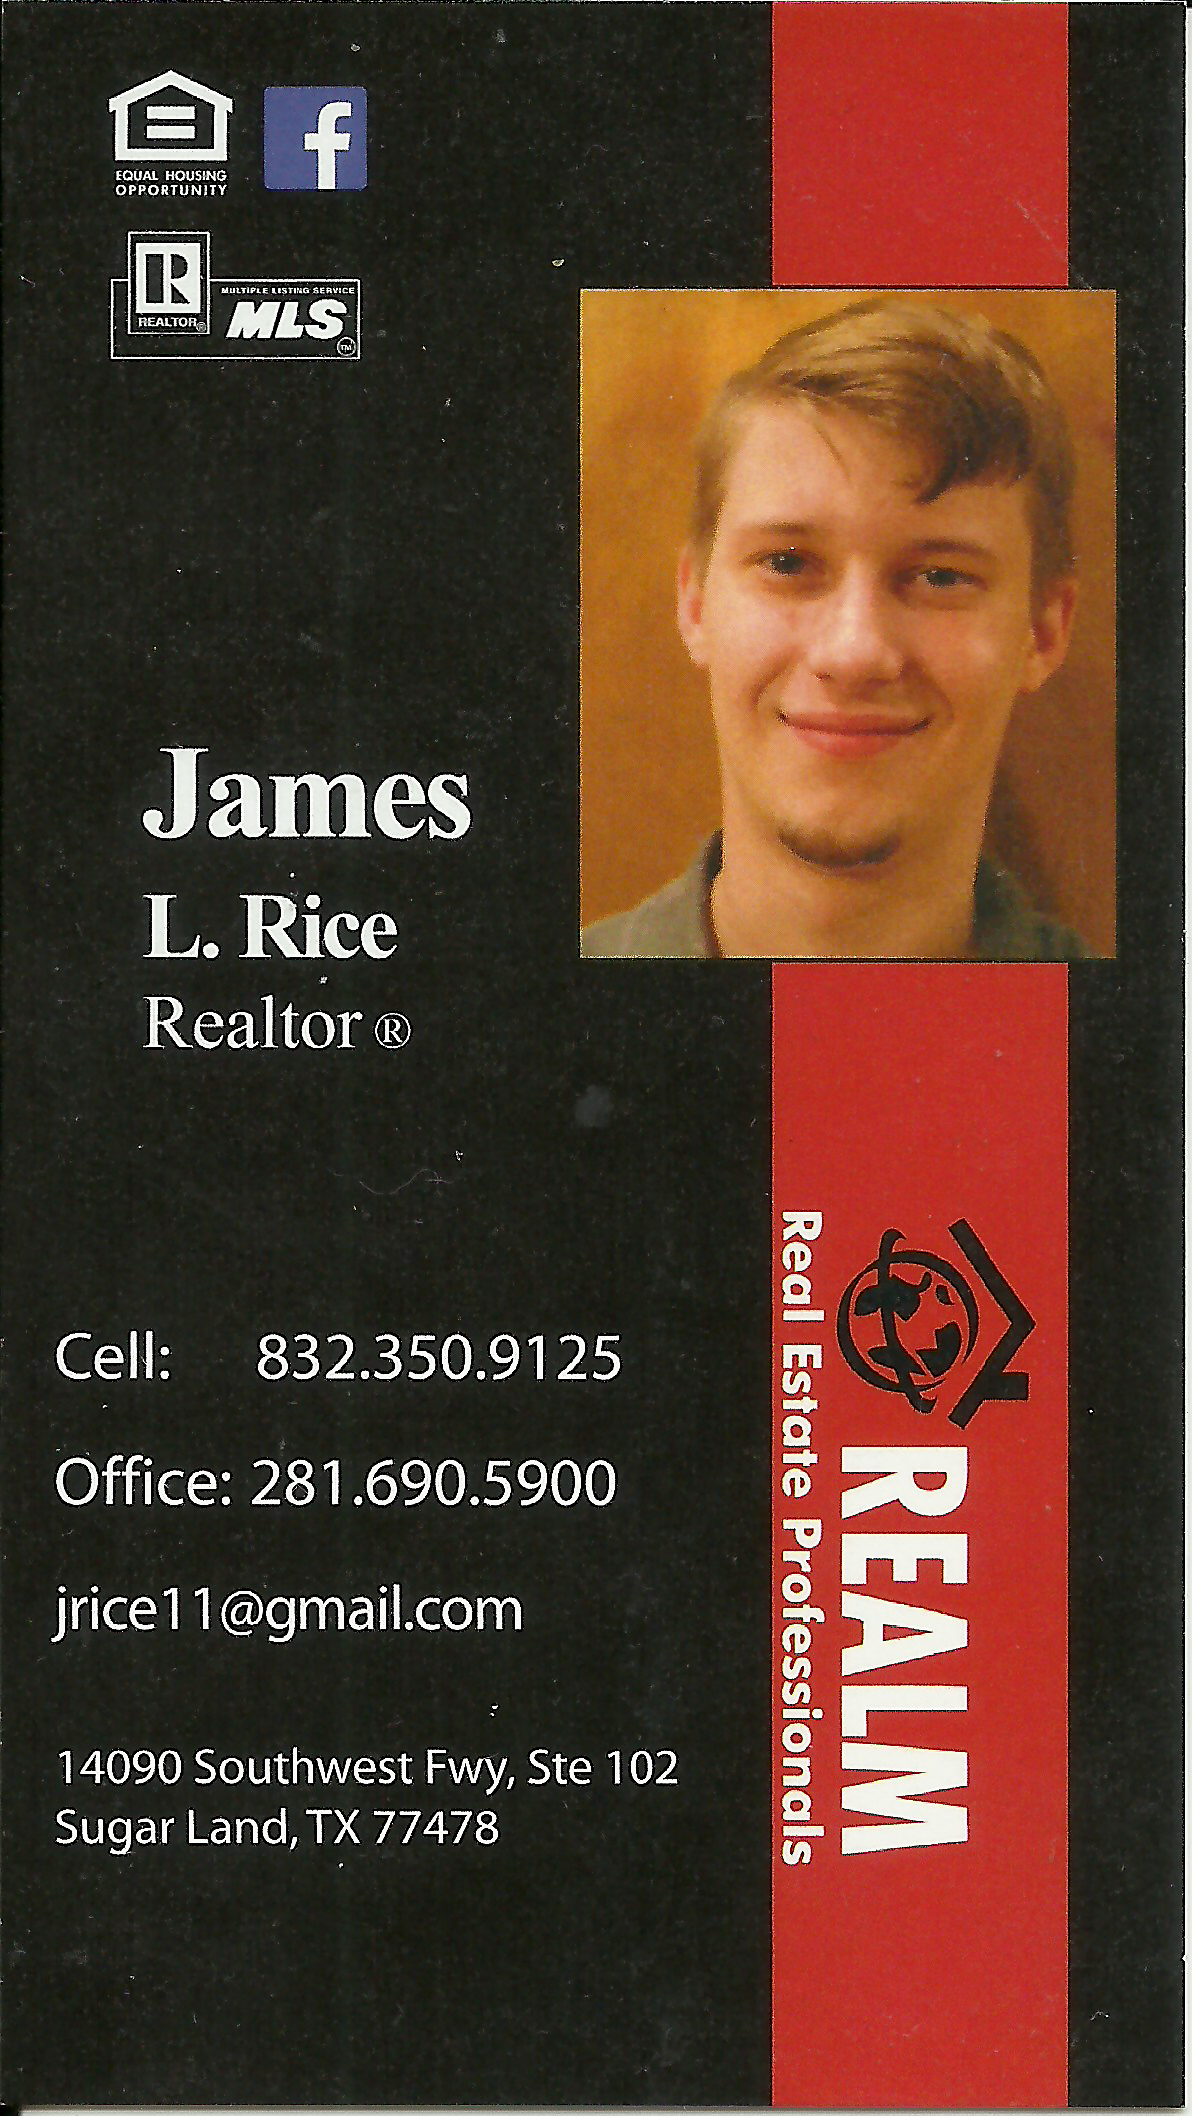 james rice realtor business card example graphic design